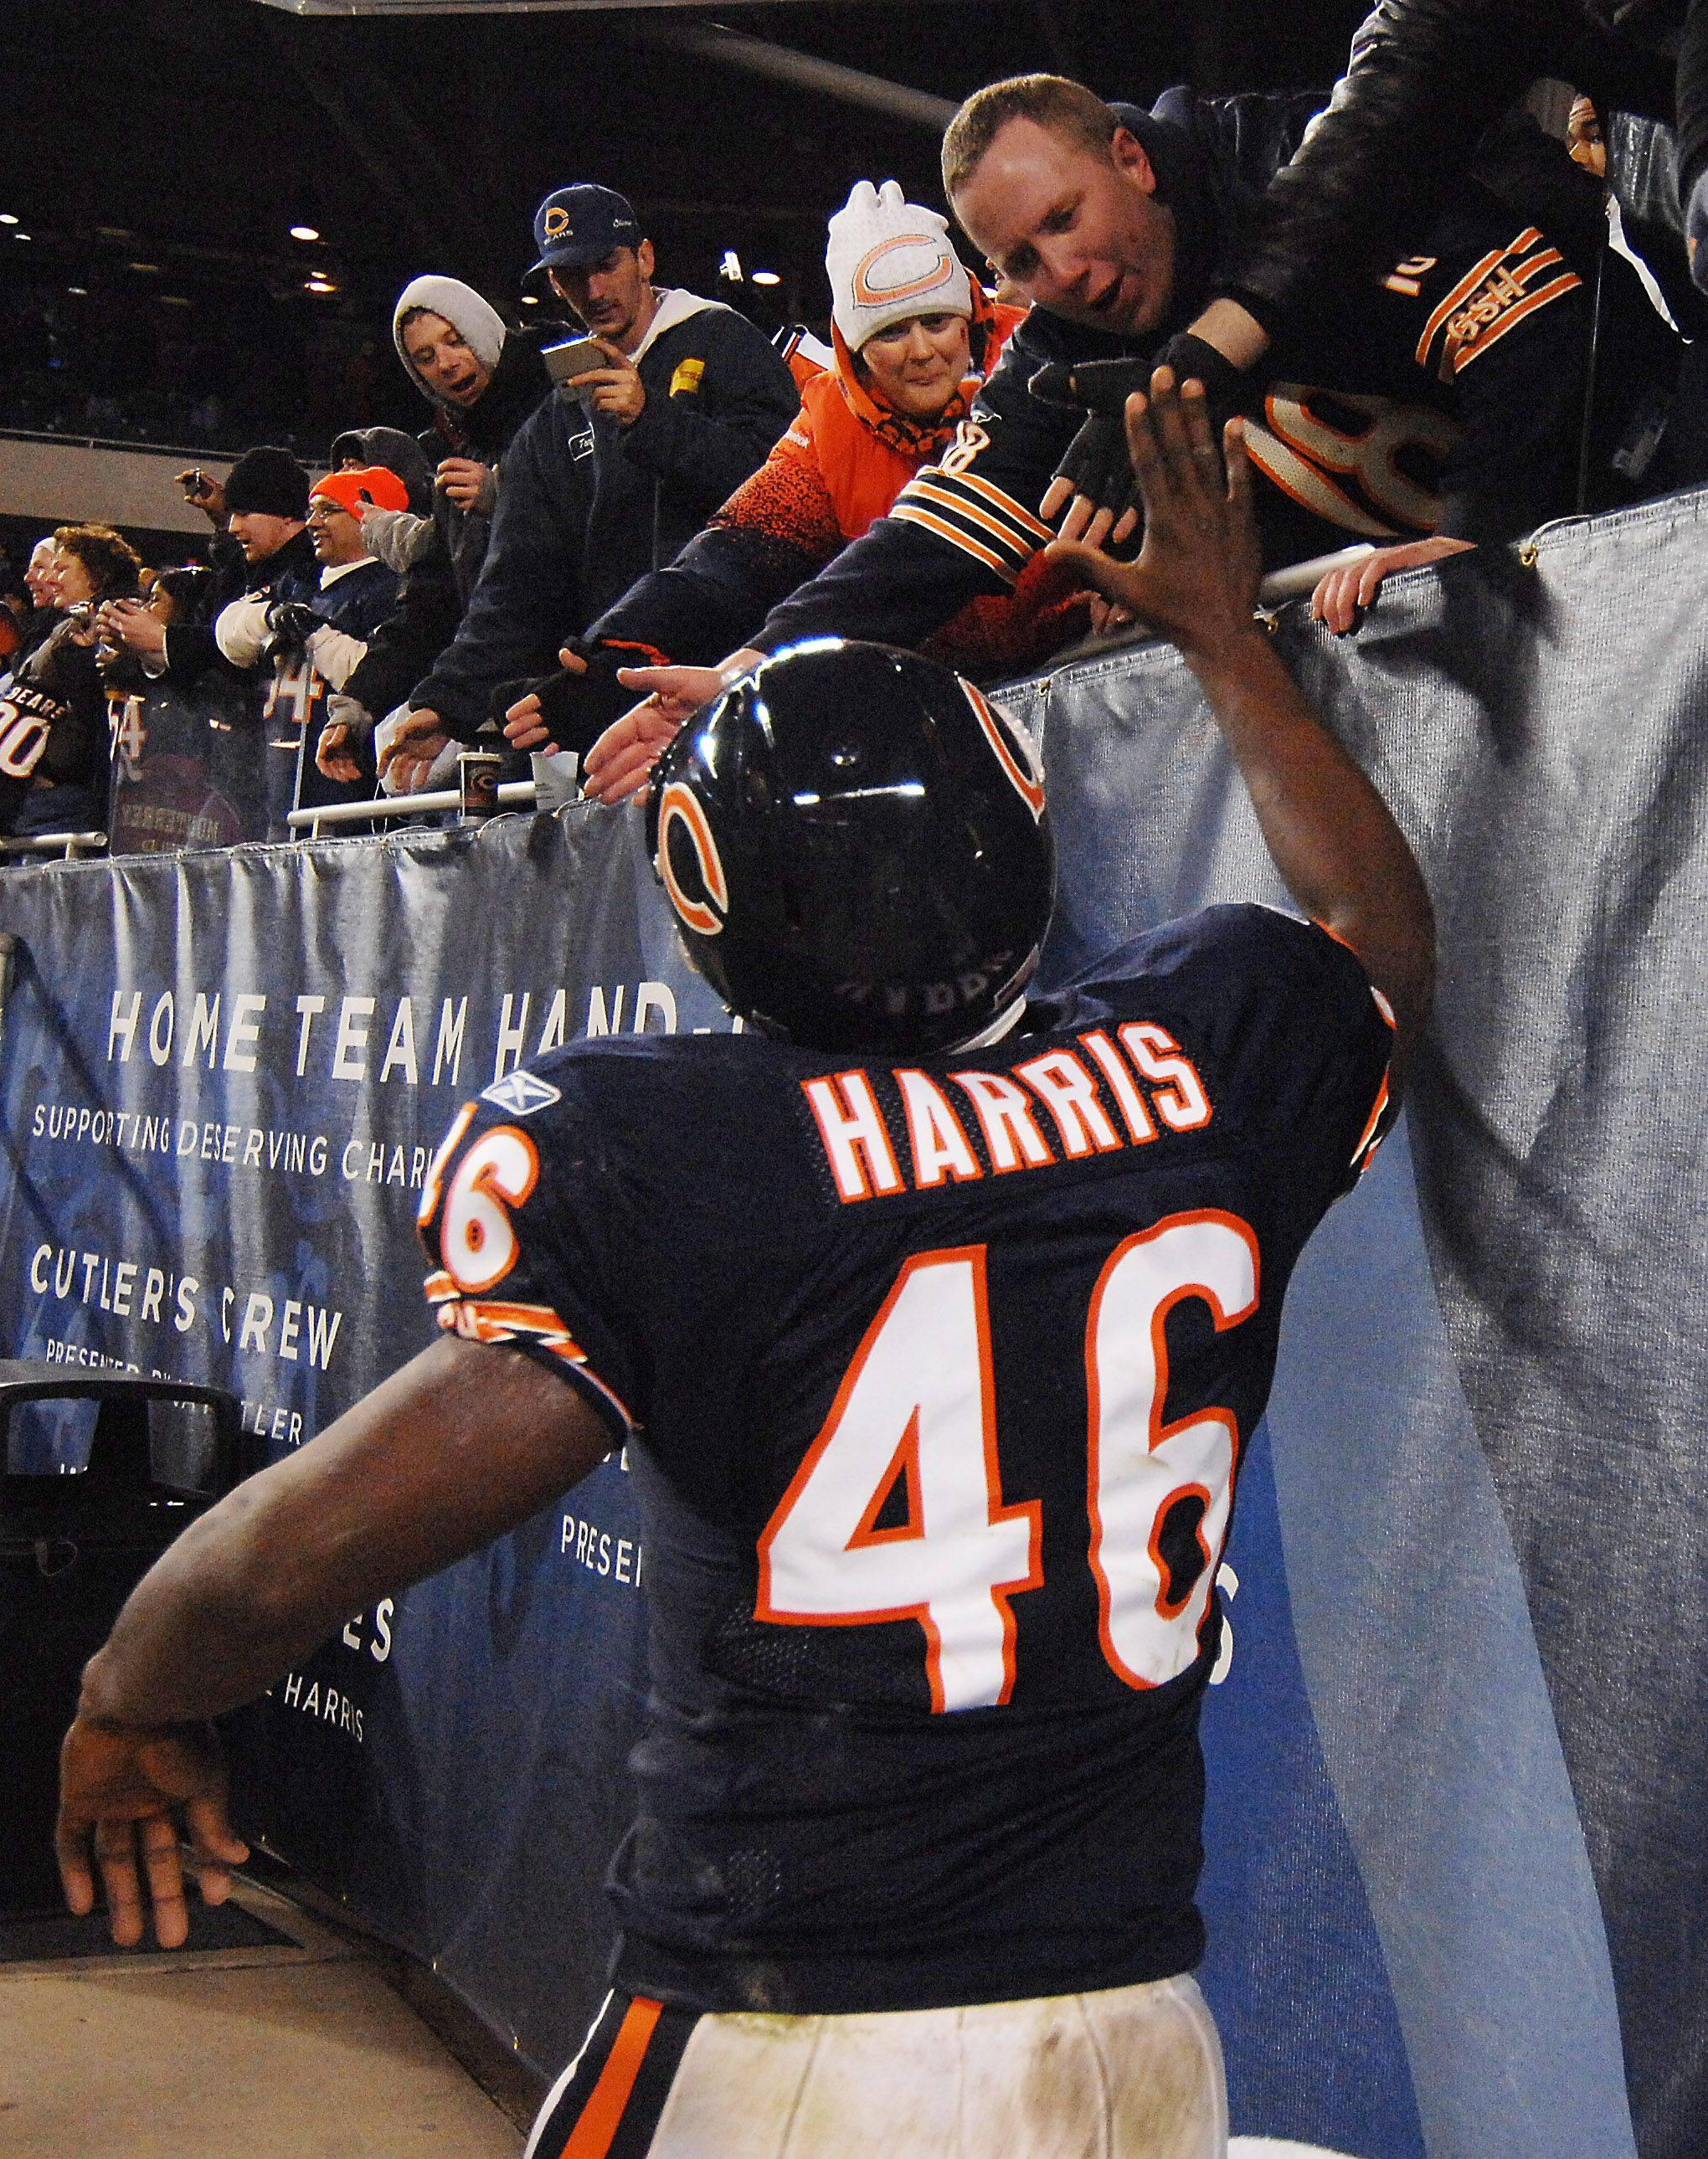 Bears Chris Harris celebrates their victory with the fans at the end of the game against the Eagles.